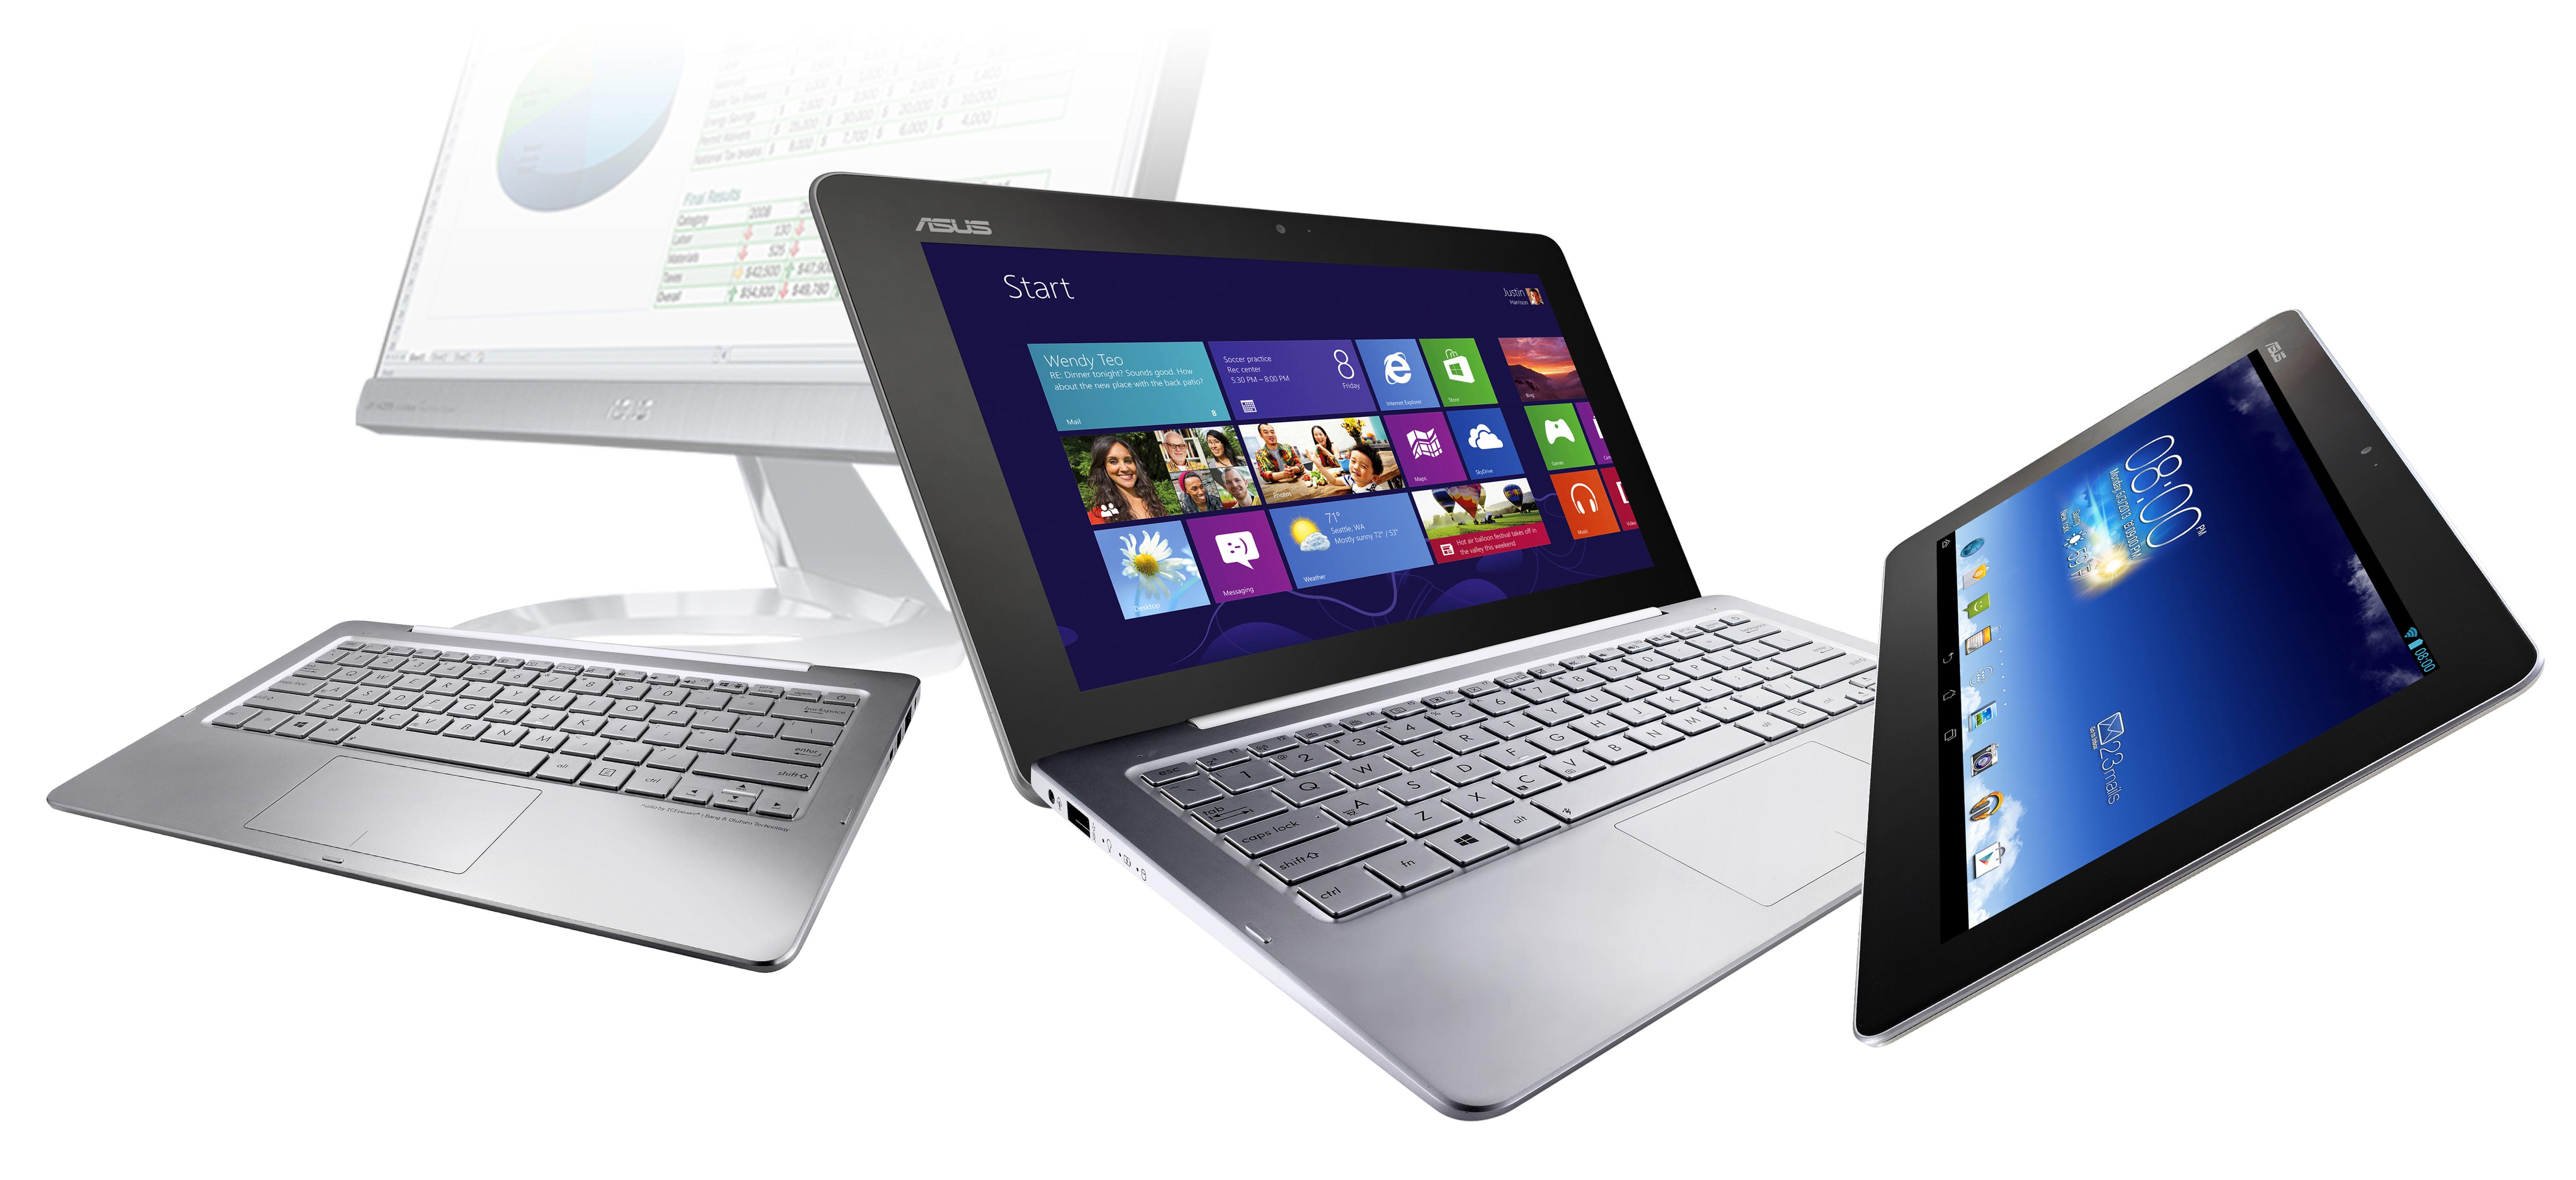 aa81fd2e6dad2833_ASUS-Transformer-Book-Trio_2